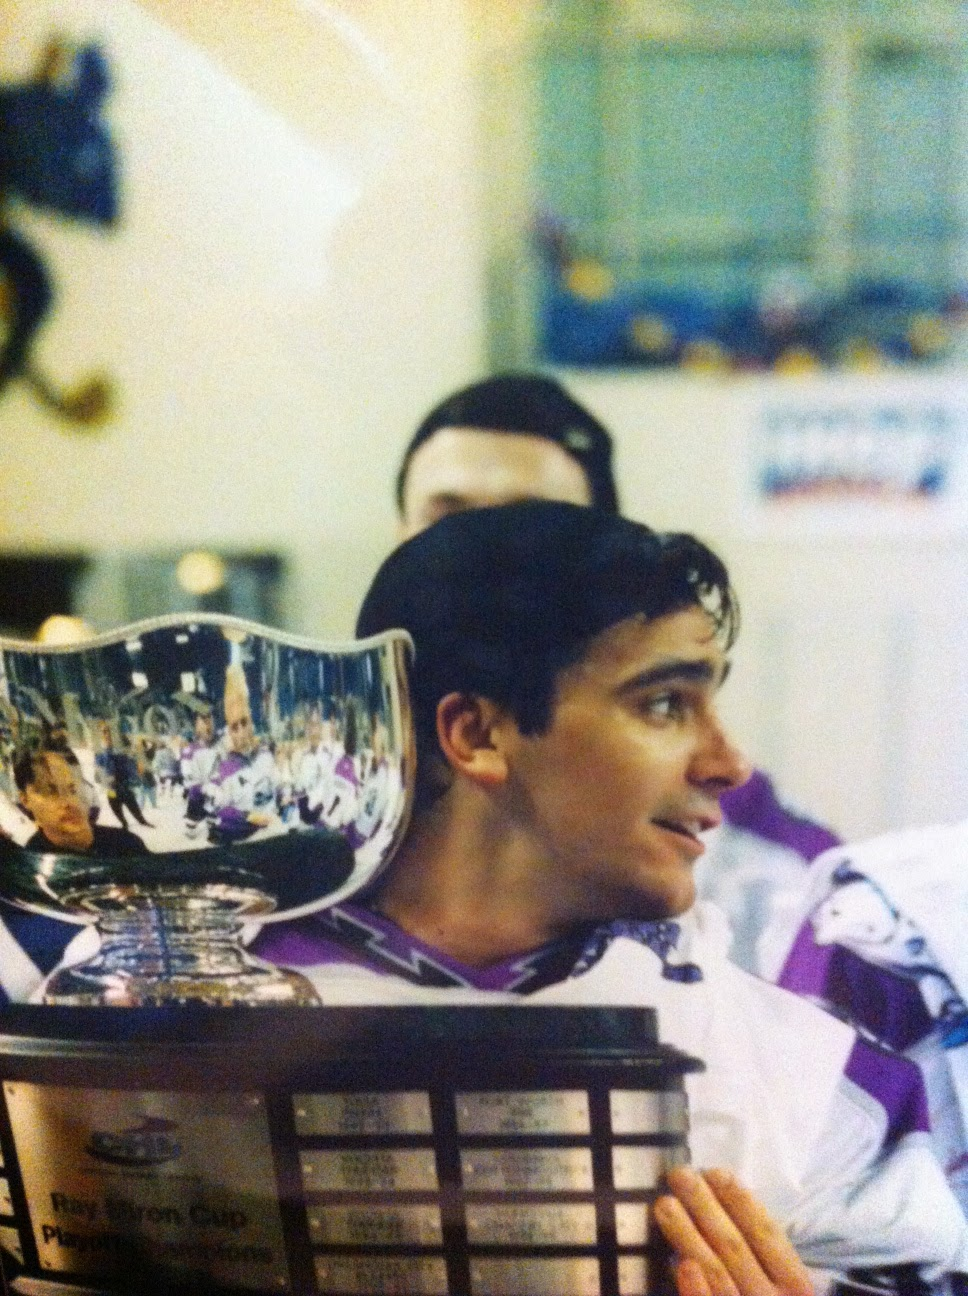 Indianapolis hockey: Indy's title teams: The 2000 Ice